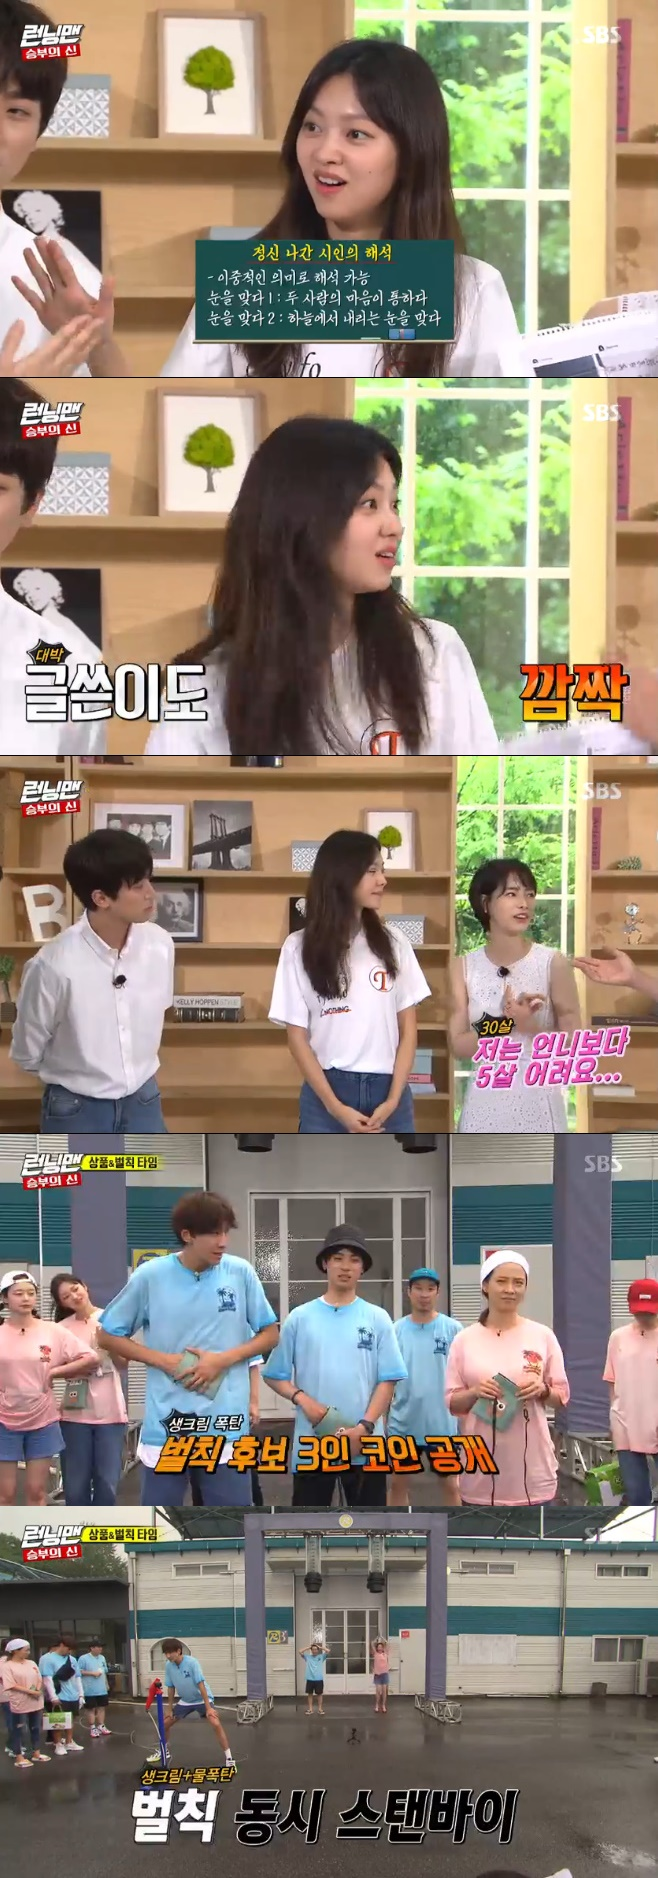 """<p> 'The other party to the original Asian transactions'of Park Jung Min Lim Ji-yeon Choi, You-Wha the 'Running Man'in the personality, the activity unfolded.</p><p>25 broadcast SBS TV 'Running Man'in the analysis and Jeon So-min opening of the penalties performed to the public. Ahead of the opening minutes, the most penalty you were Jeon So-min and JI Suk Jin, respectively, jigsaw, modified King transformed himself to attracted the attention.</p><p>The movie 'Tazza 3 : you download Jack of'actor Park Jung Min, Lim Ji-yeon, Choi, You-Wha as a guest emerged. Three people are now Suk Jin, Jeon So-min of shocking dresses on the check appeared and at the same time amazing to see the laughter inside him.</p><p>'Running Man' member Lee Kwang-Soo plays 'Party 3'appeared together for. Yoo Jae-Suk is the """"trailer in (optical function) I see""""he teased, and Lee Kwang-Soo """"no. Emerges. But the Secret Service and the important role""""and</p><p>Or three people each introduction in the personality exposed. The first Park Jung Min is the prose editor now enough talent game were revealed. This in this light that the ancient """"is is said""""and there they were. But Yoo Jae-Suk """"is now any world I academic tell you a story because""""he was, and Lee Kwang-Soo gets flustered to look around the laugh inside him.</p><p>Lim Ji-yeon is """"'Tazza'in mineral water my partner and I Lim Ji-yeon""""and introduced. Or Lim Ji-yeon and Jeon So-min, of Outdoor of the year was unveiled. The two men work together not only in this and. But members Jeon So-mins sake father asked, and Lim Ji-yeon is """"the small people that drunk the to walk well""""you uncovered.</p><p>Park Jung Min, too, """"for in that exercise and there are small people to his 'Running Man', taken and soon to come though. I sweat in between and did you know, 'Running Man' shooting is also not""""high width to more. Jeon So-min, """"then the mineral water, as has been said,""""elucidated, but Lee Kwang-Soo and Yang more as is and do not know pretending to laugh, I"""